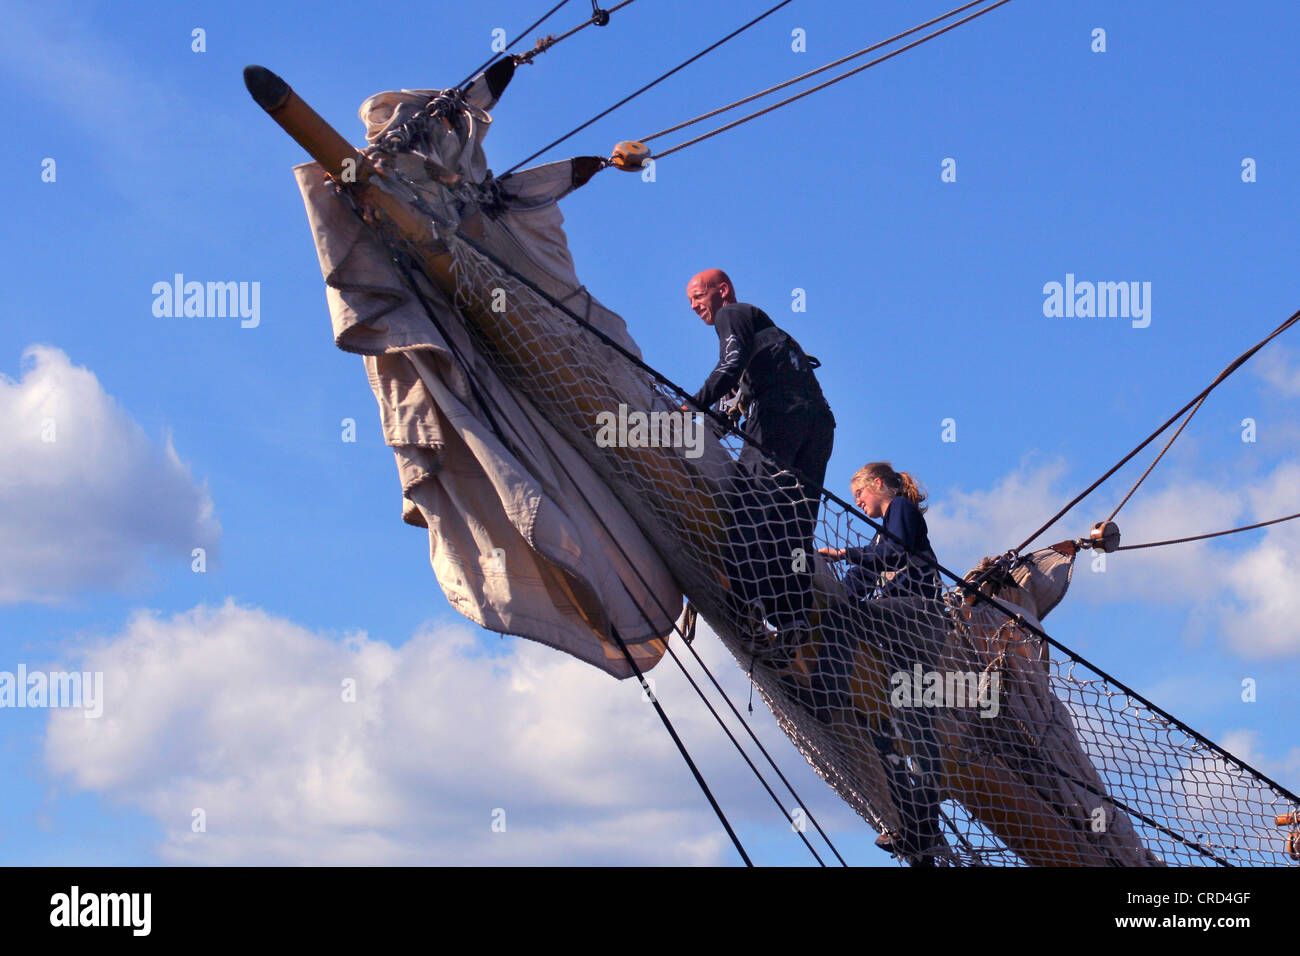 The Tall Ships' Races at Kotka. Crew on jibboom, Finland, Kotka - Stock Image